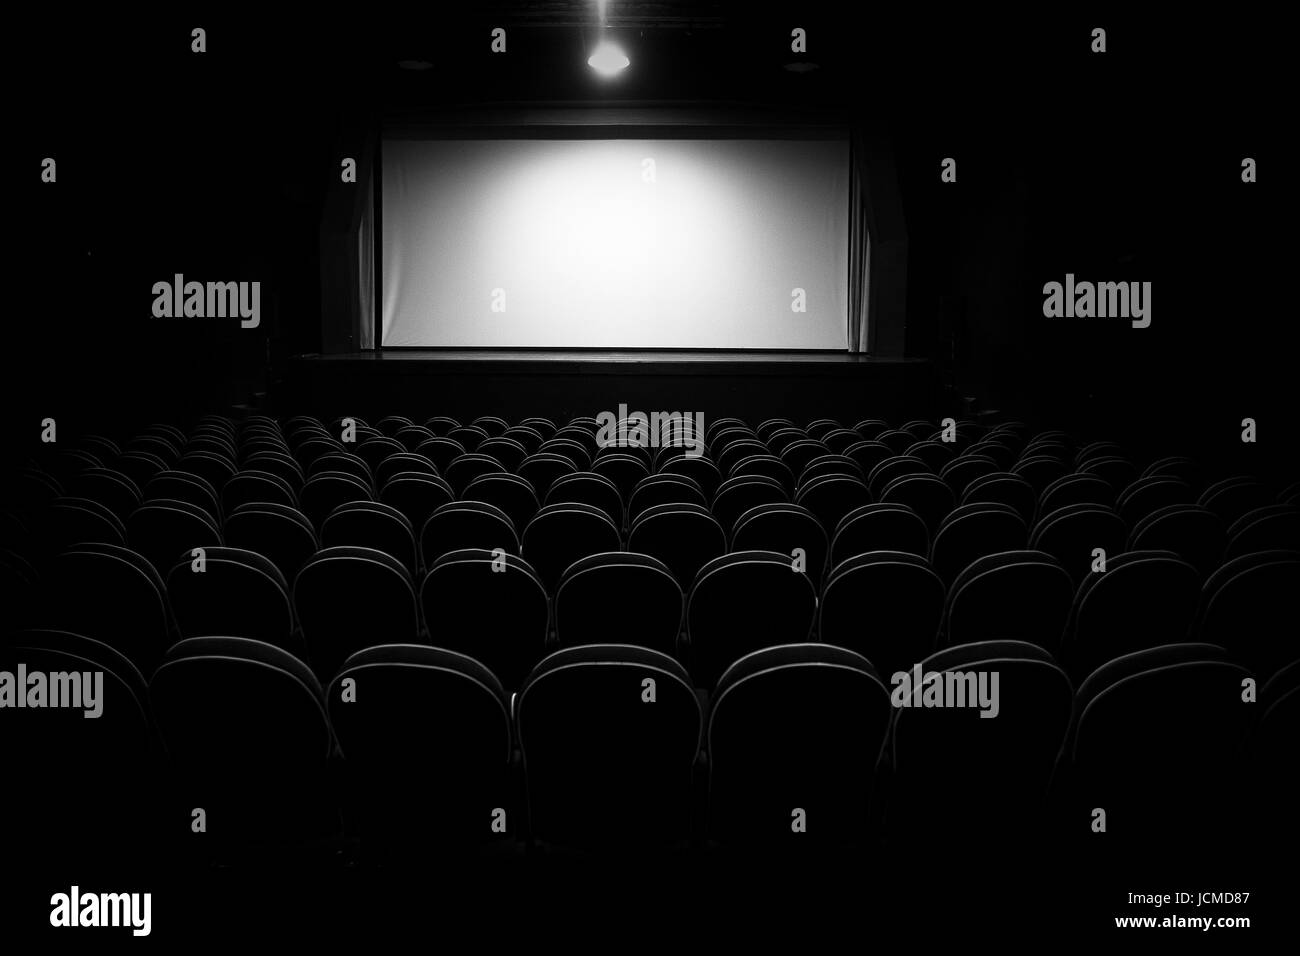 Waiting for the show - Stock Image